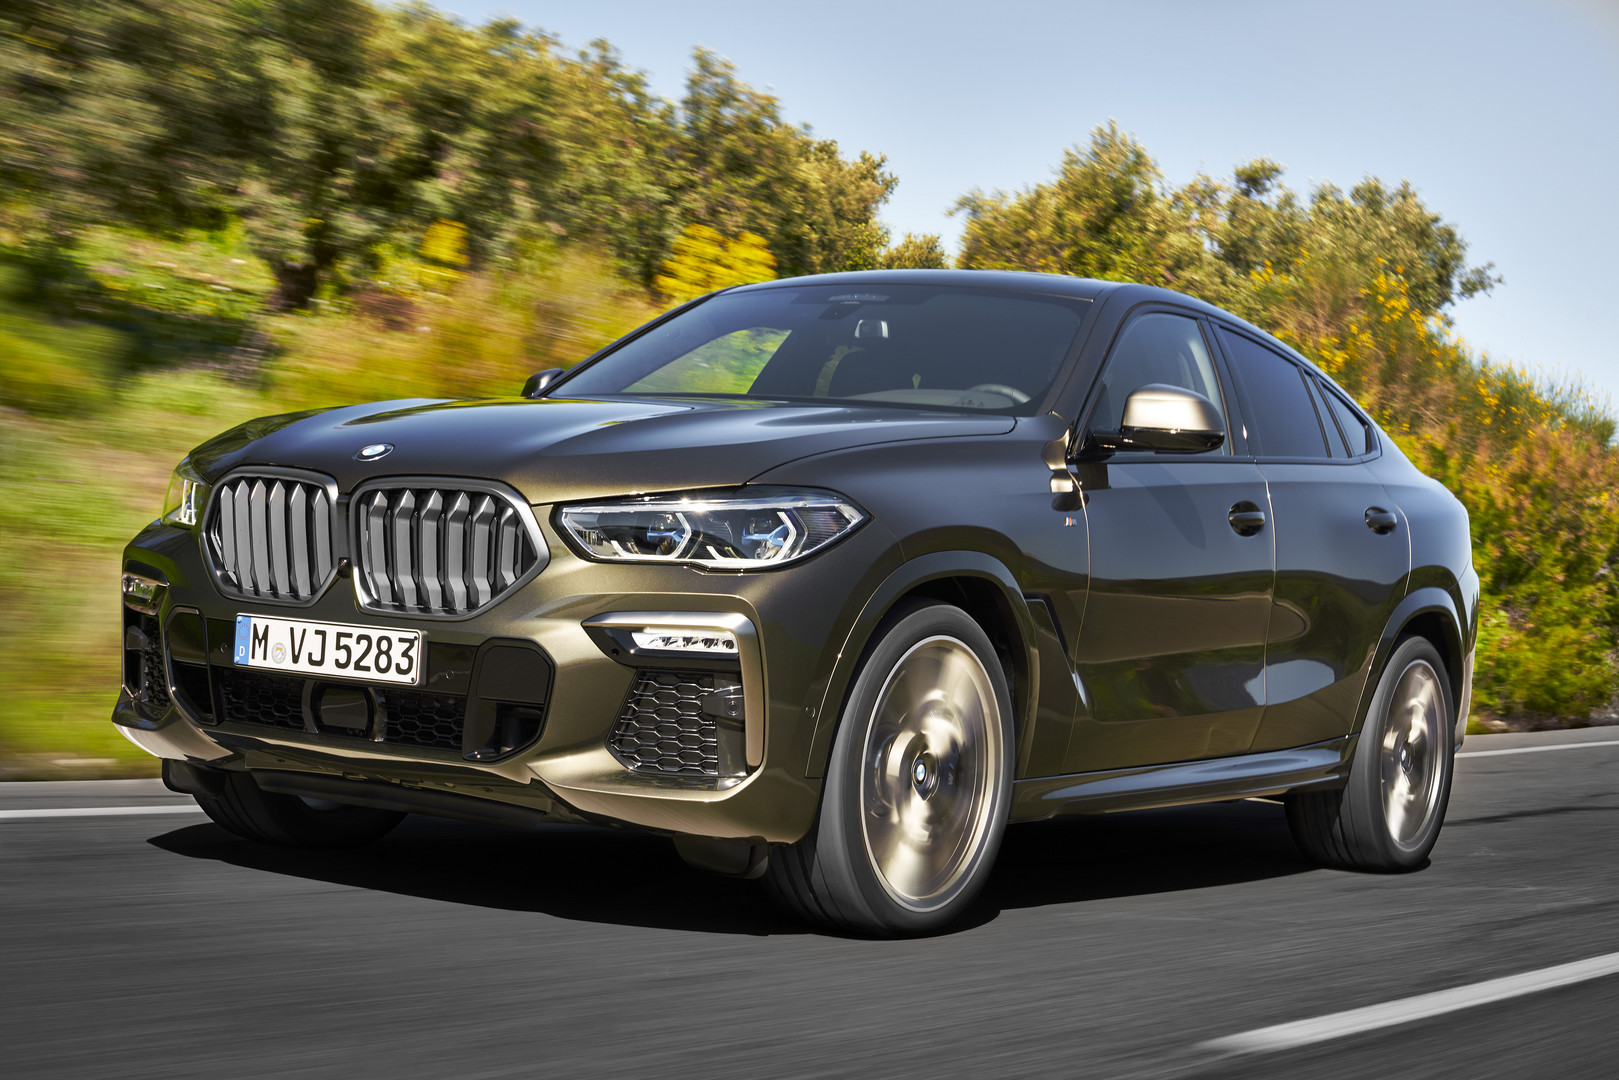 2020 BMW X6: 3rd Generation X6 Revealed